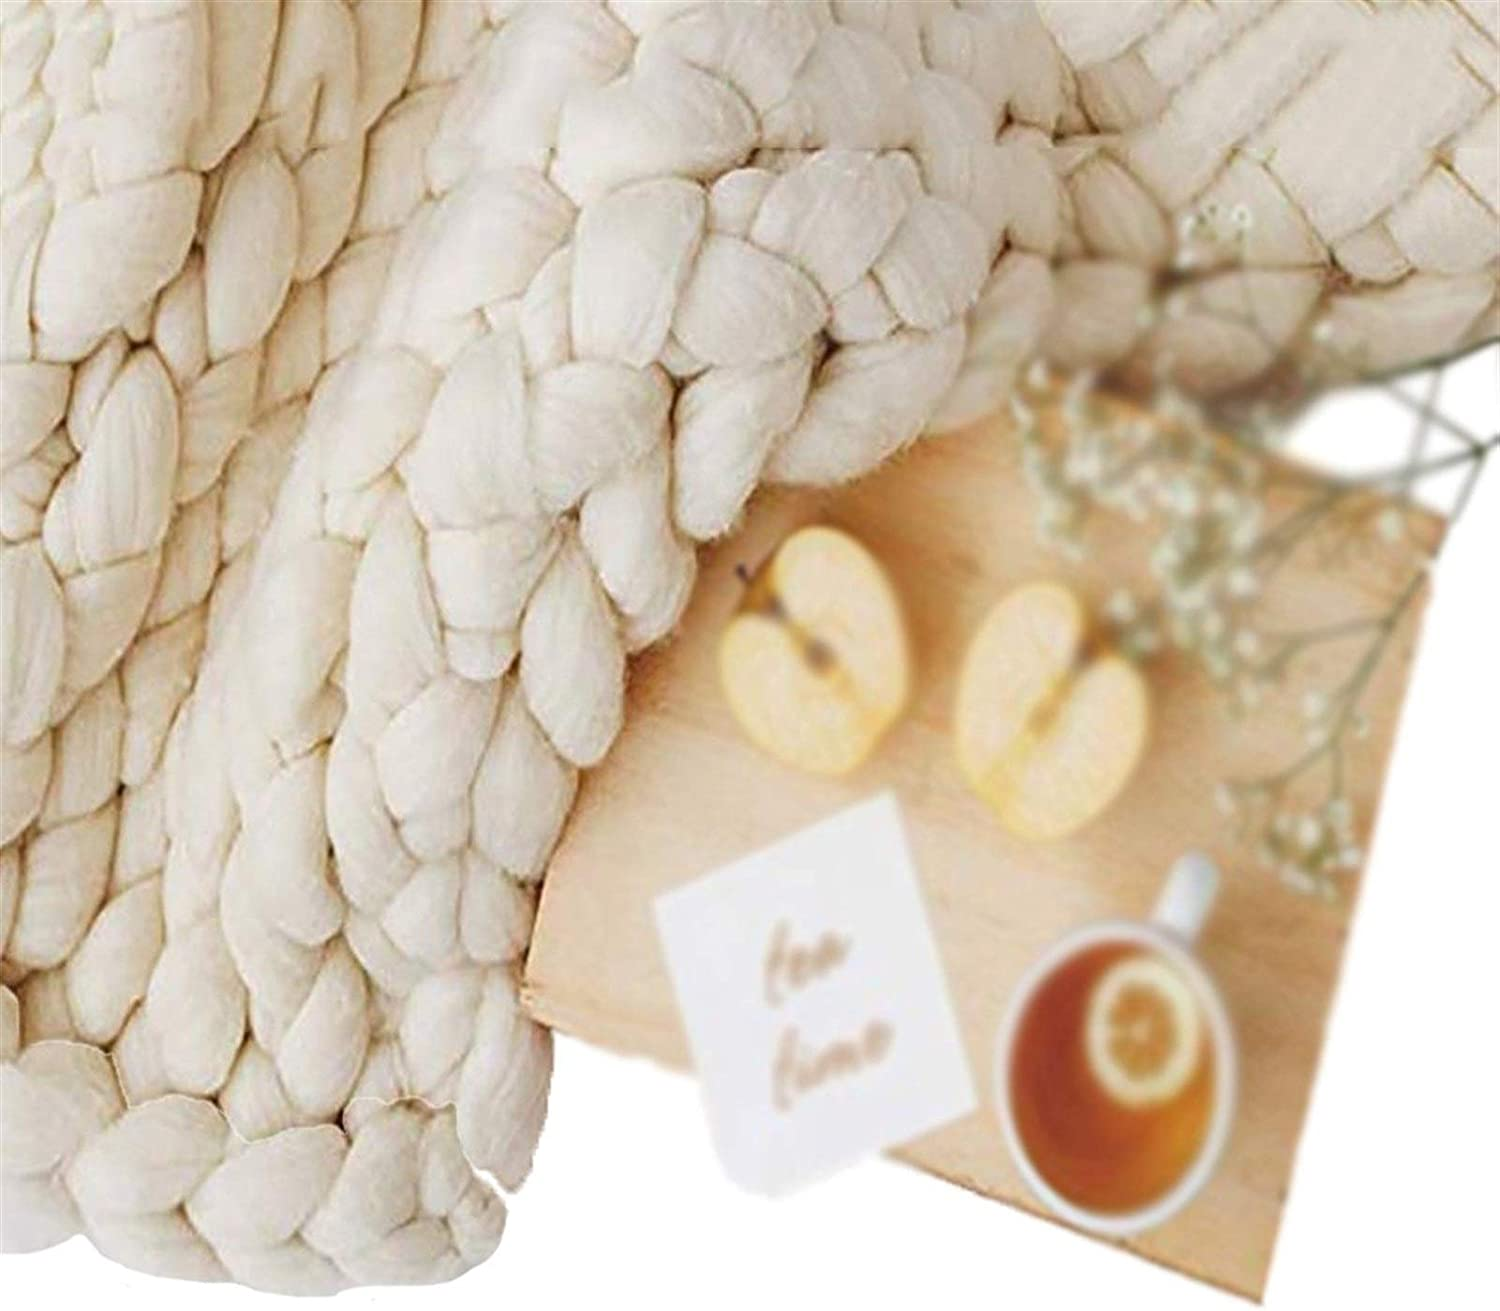 ZCXBHD Chunky Max 75% OFF Knitted Blanket Throw Free shipping on posting reviews fo Knit Cable